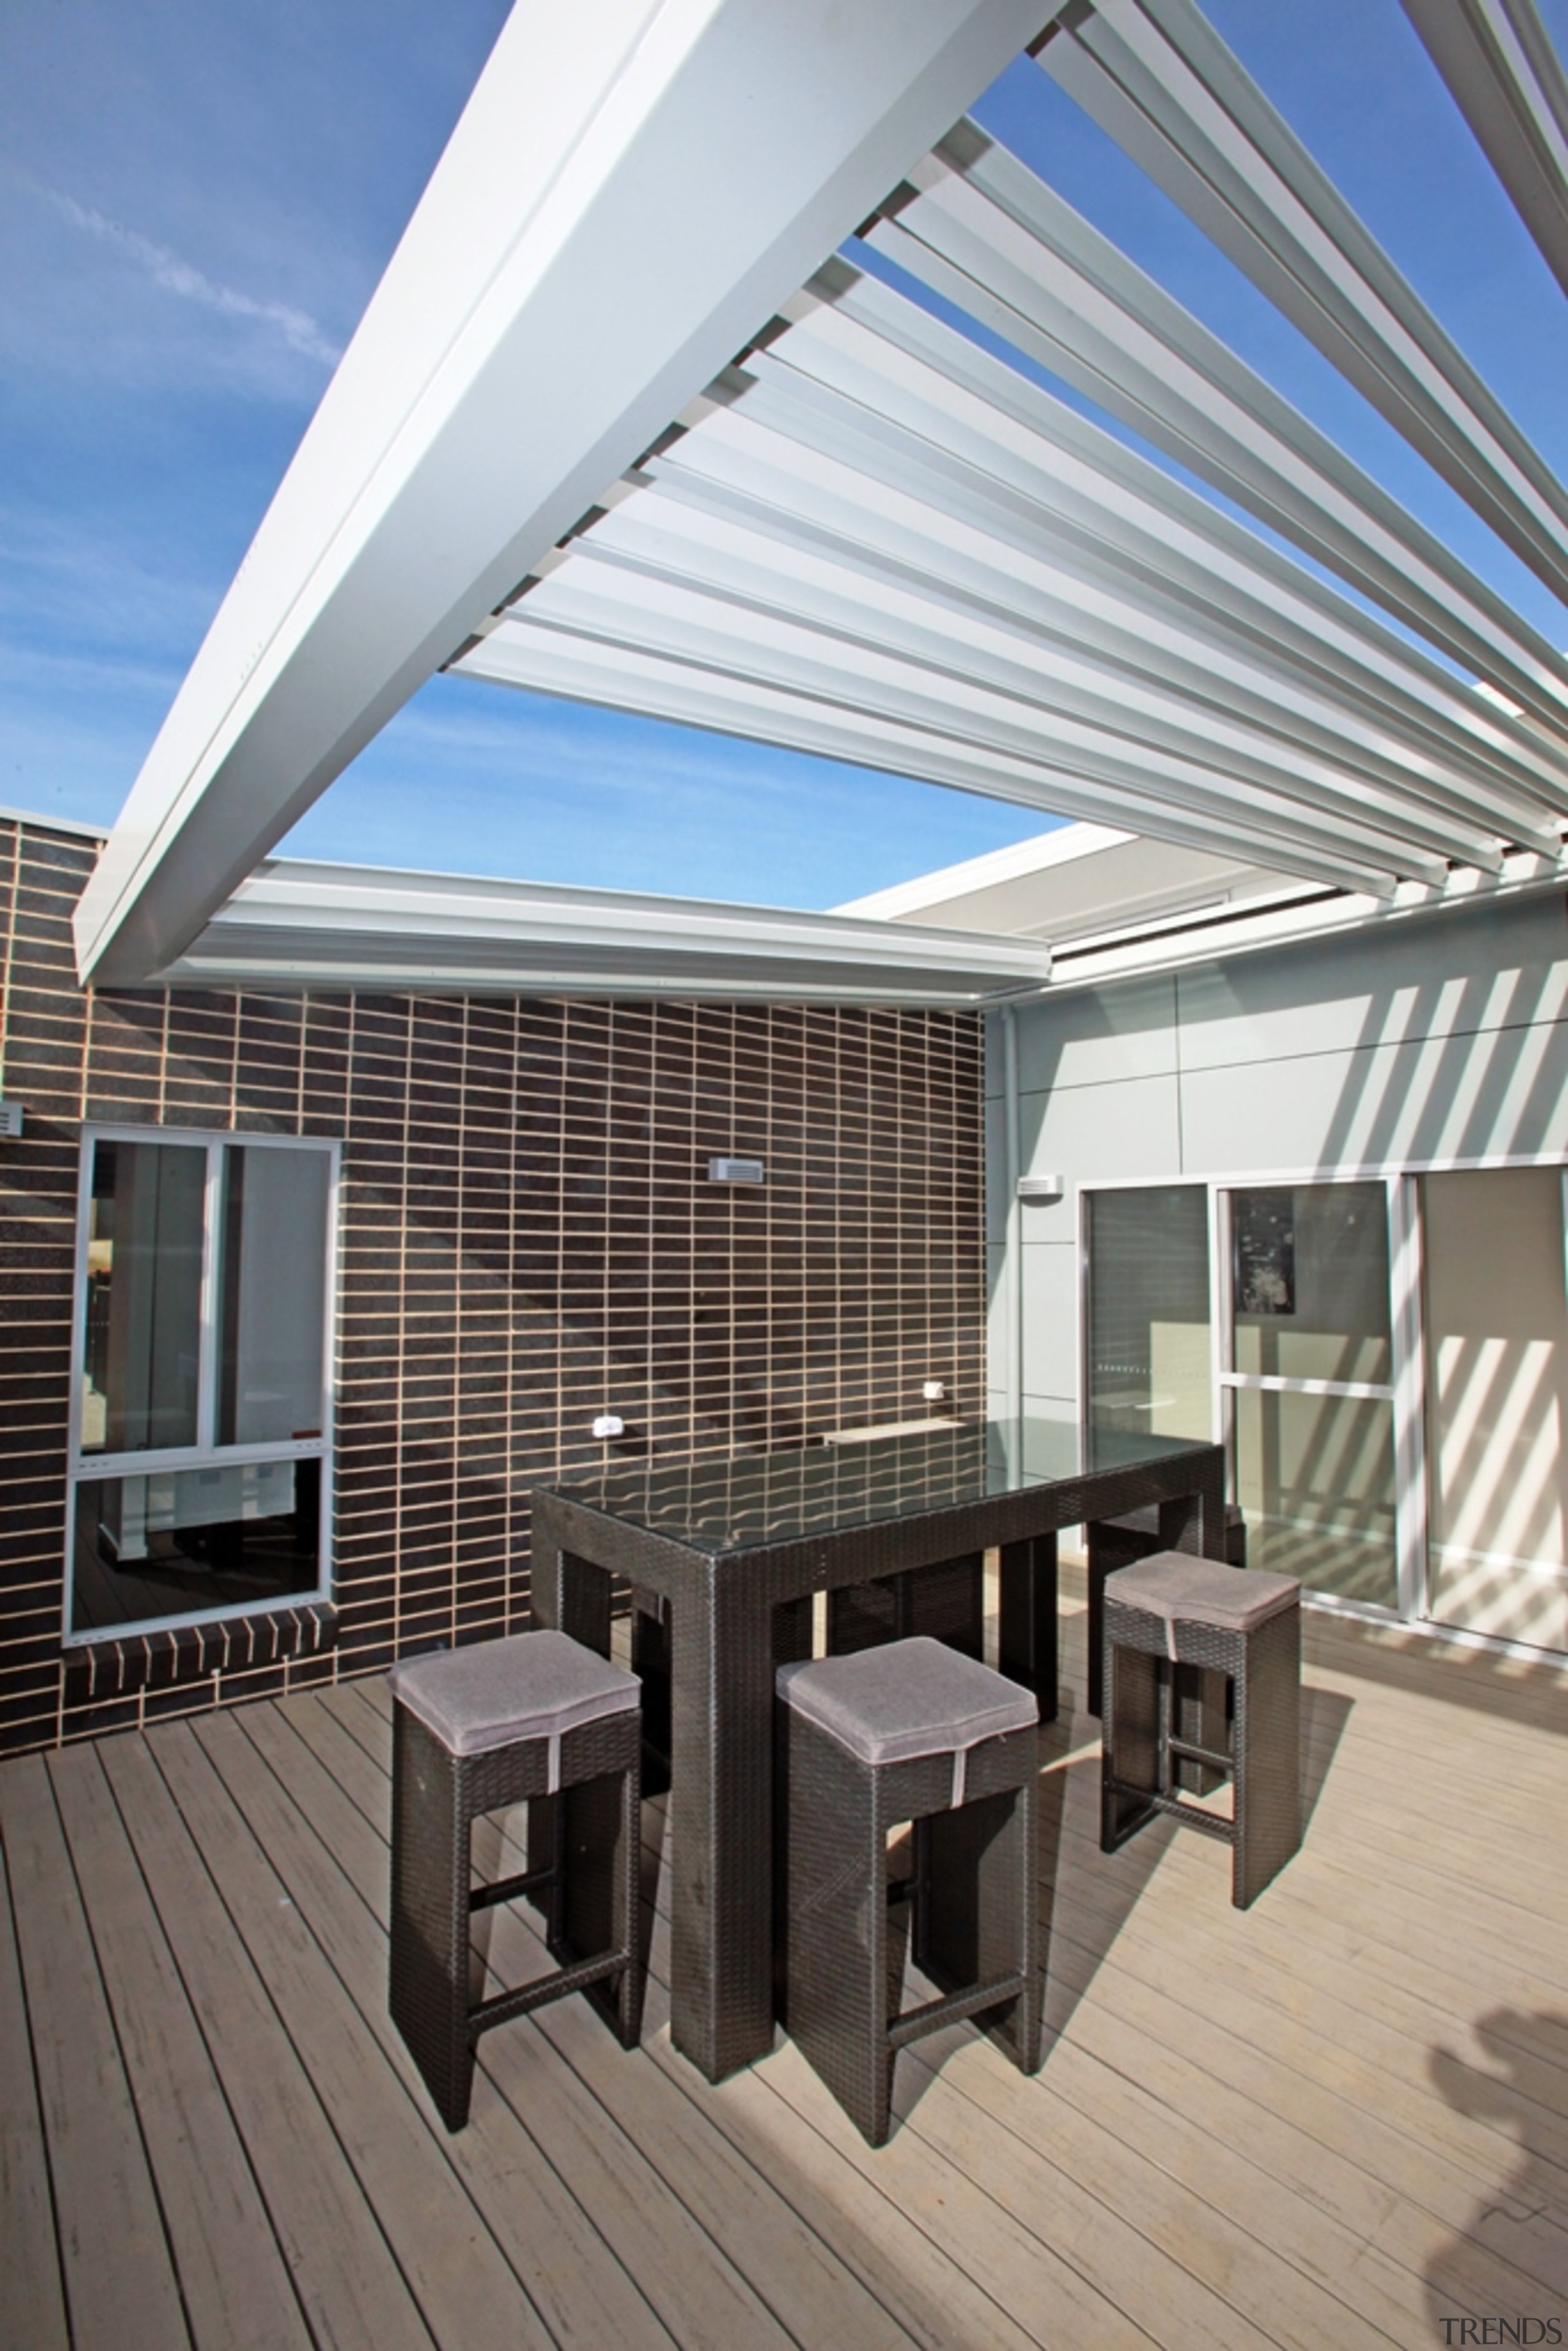 78580_louvretec-new-zealand-ltd_1557360724 - apartment | architecture | building | apartment, architecture, building, ceiling, daylighting, deck, design, facade, furniture, home, house, interior design, patio, pergola, property, real estate, roof, room, shade, gray